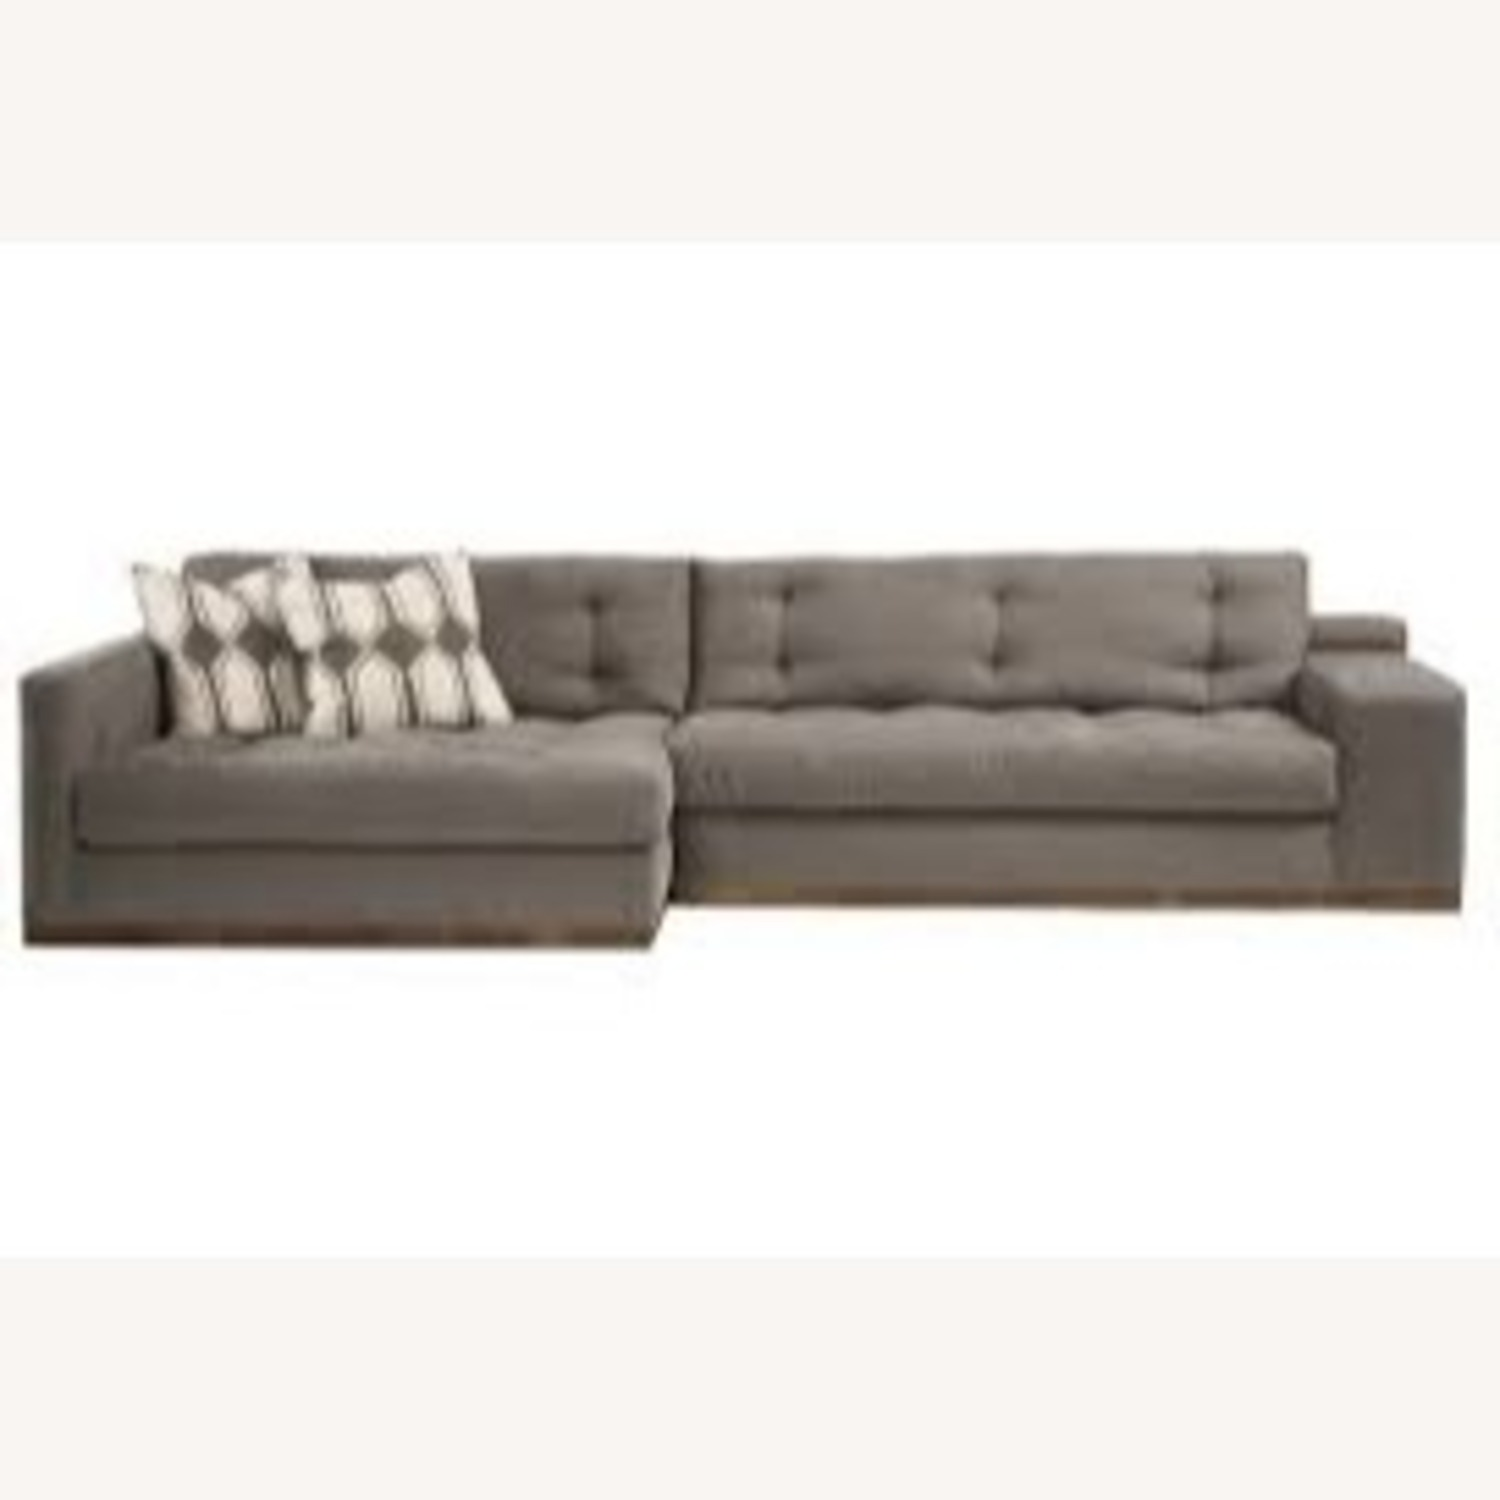 Sturdy Expertly Crafted Enormous Vegan Sectional - image-1